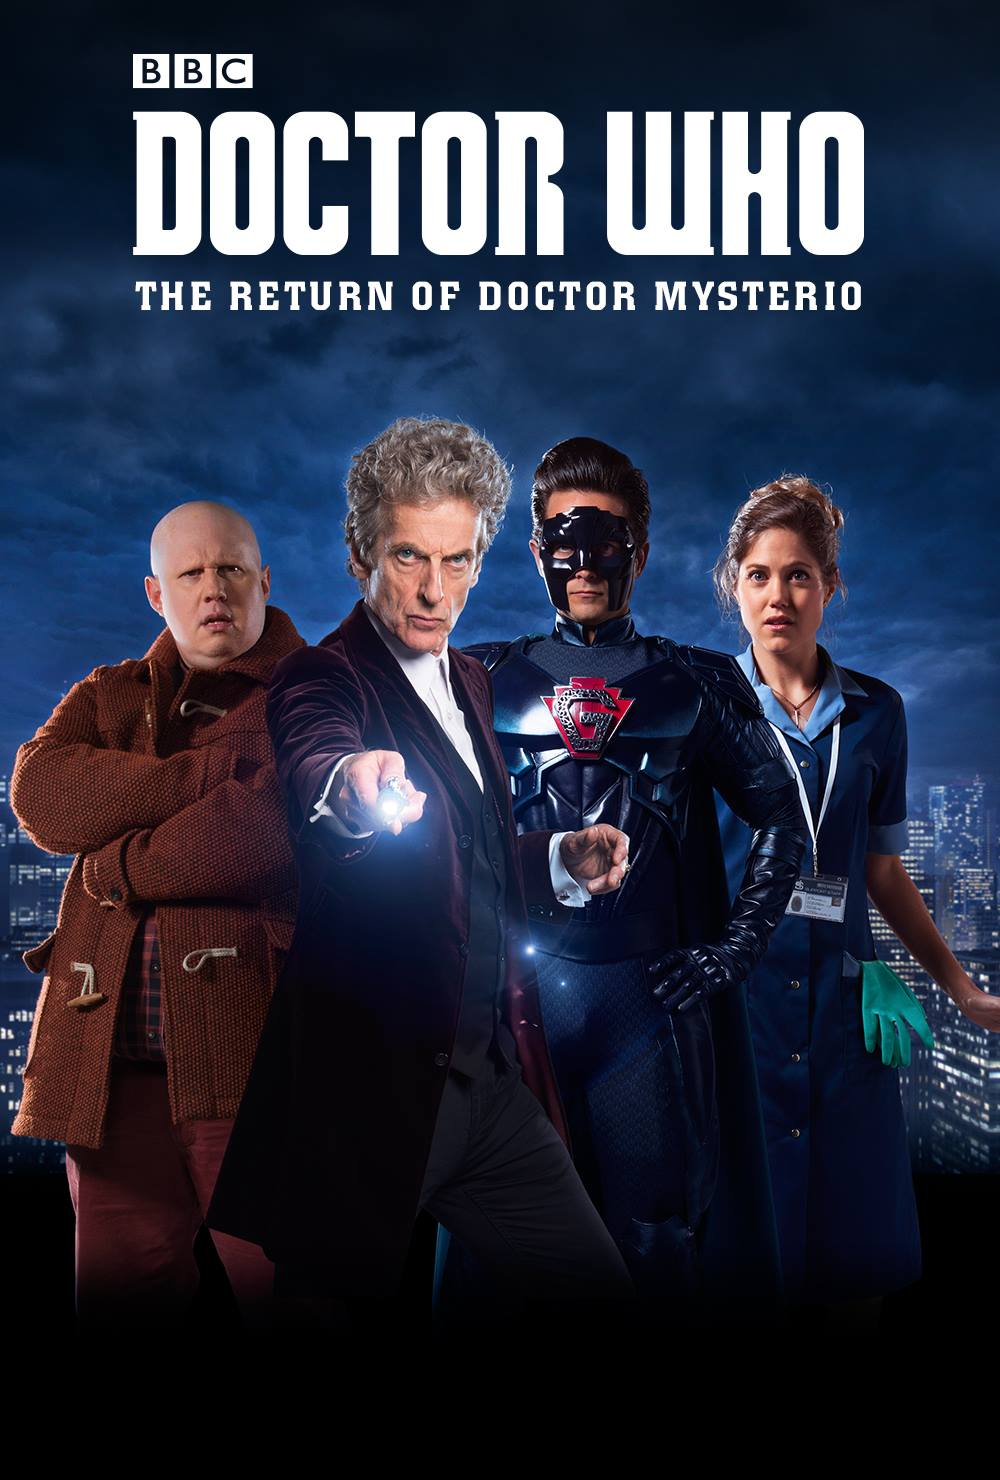 The Return of Doctor Mysterio in theaters Dec. 27, 29